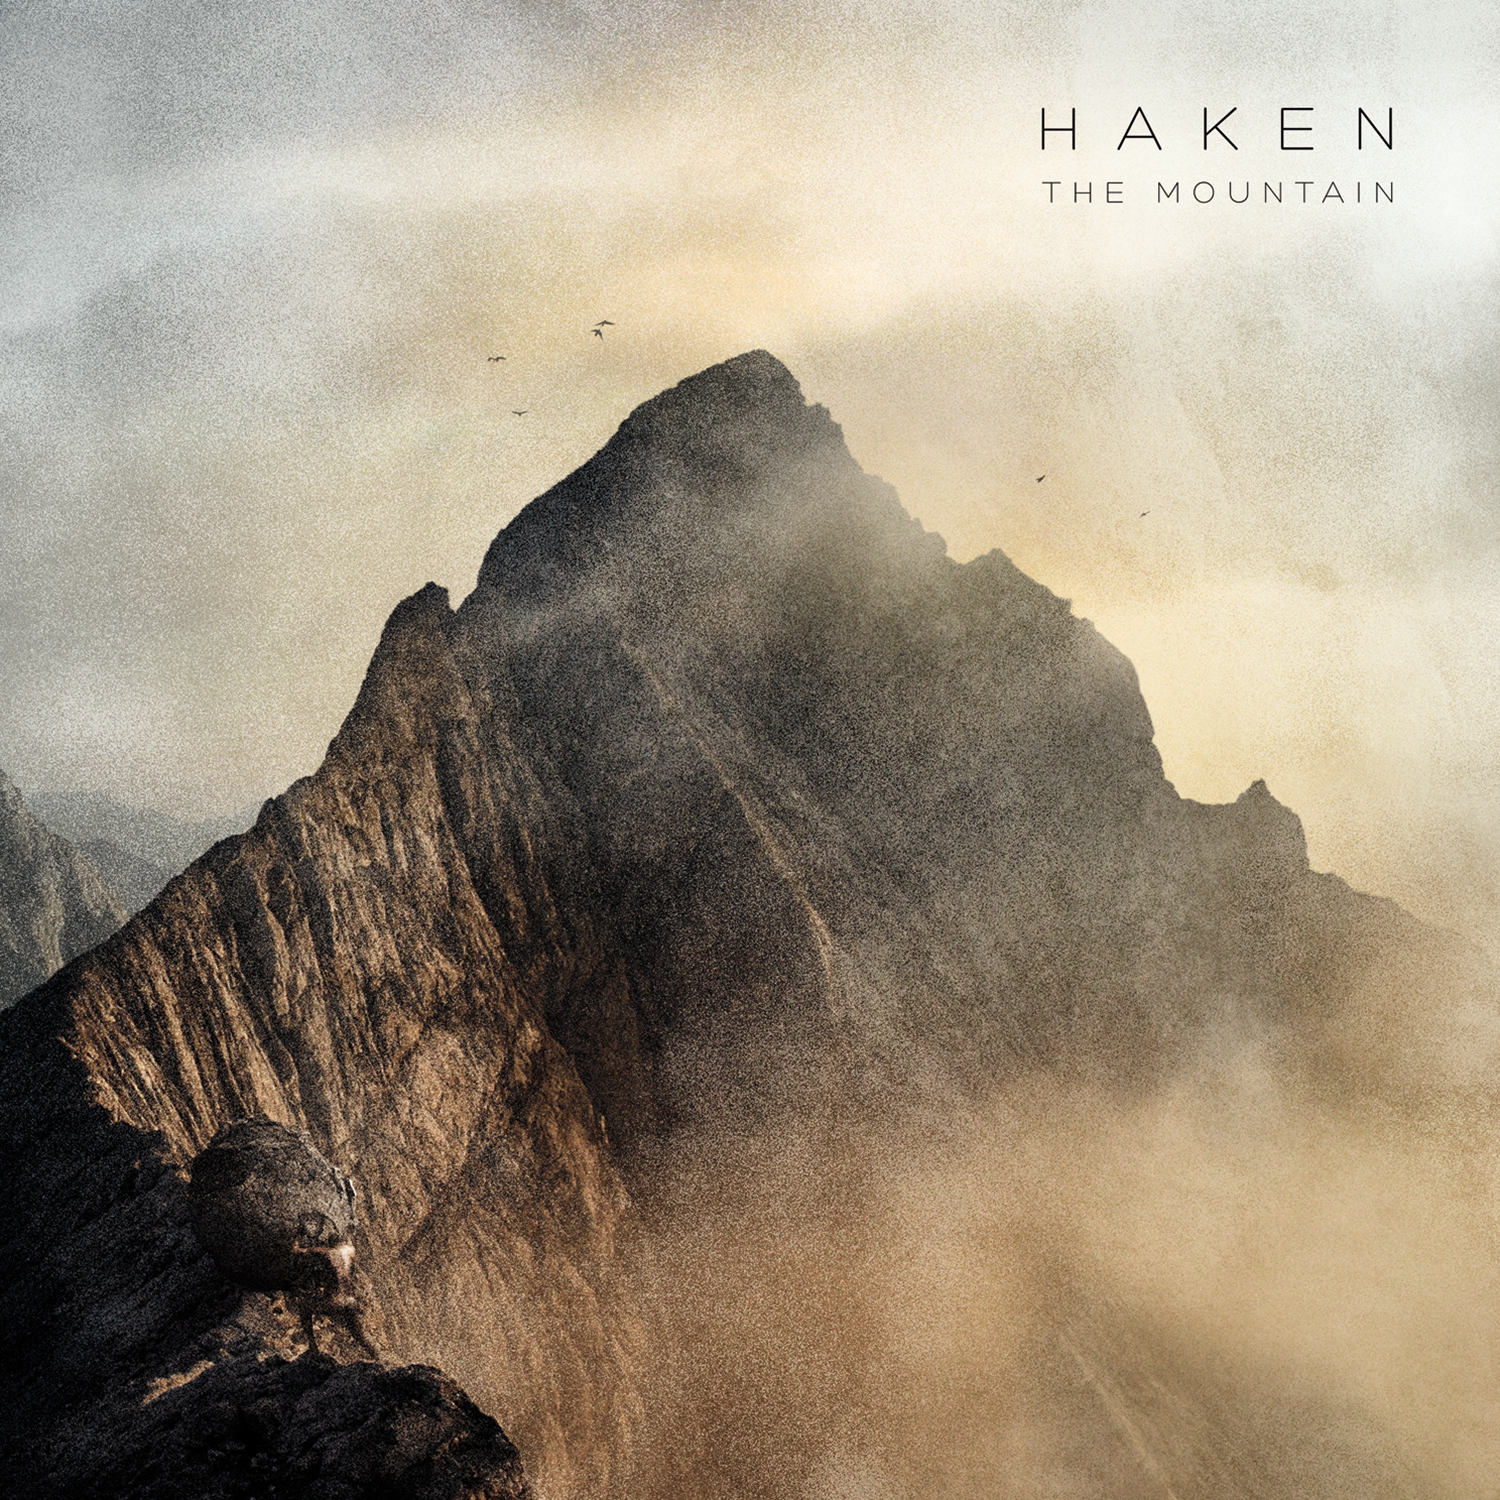 Haken – The Mountain Review